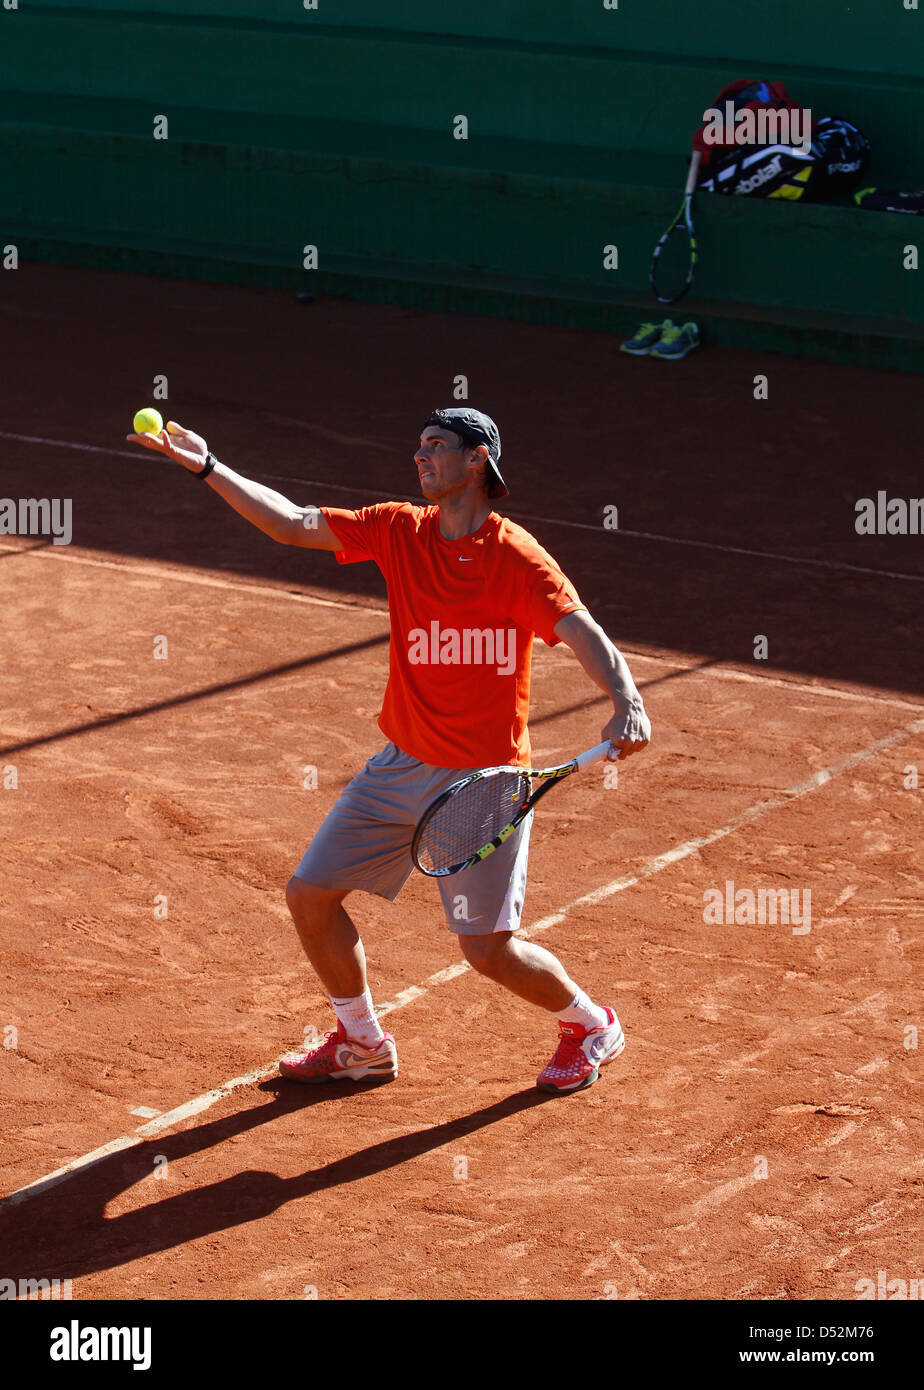 Rafael Nadal On Court High Resolution Stock Photography And Images Alamy